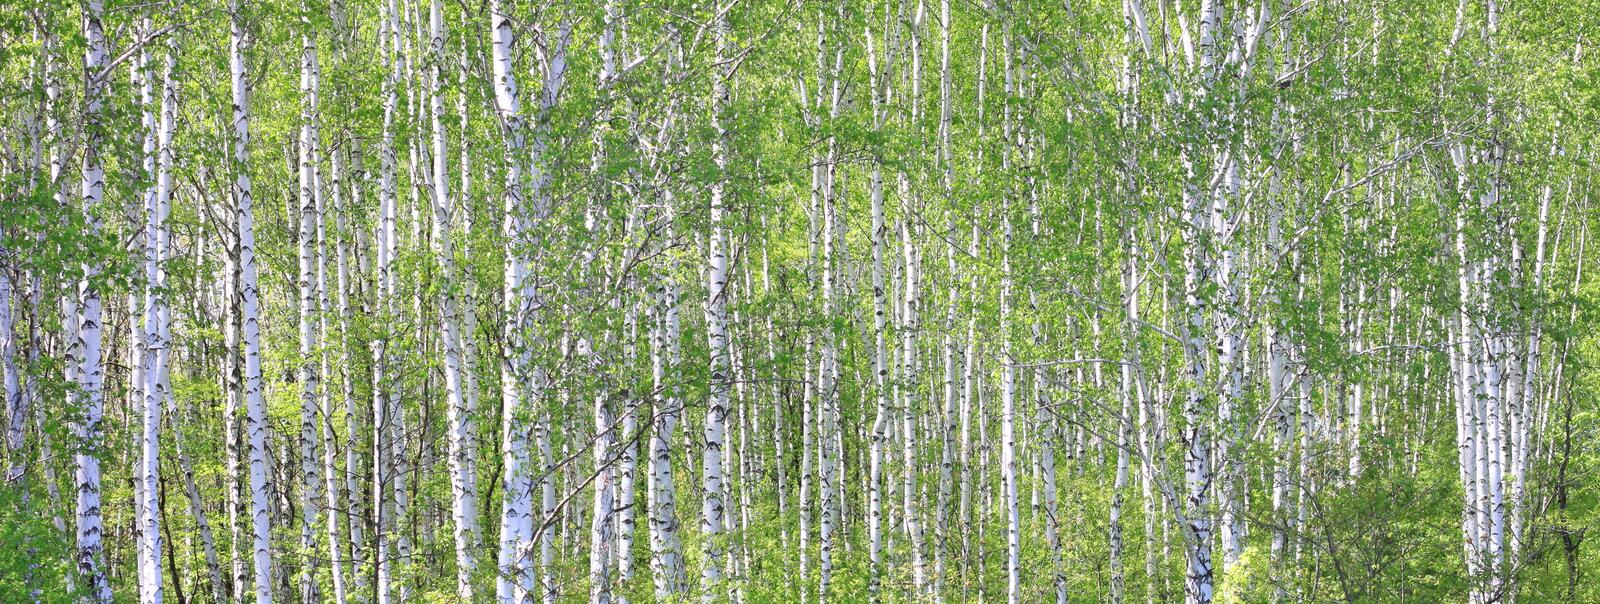 Beautiful white birch trees in spring in forest stock images